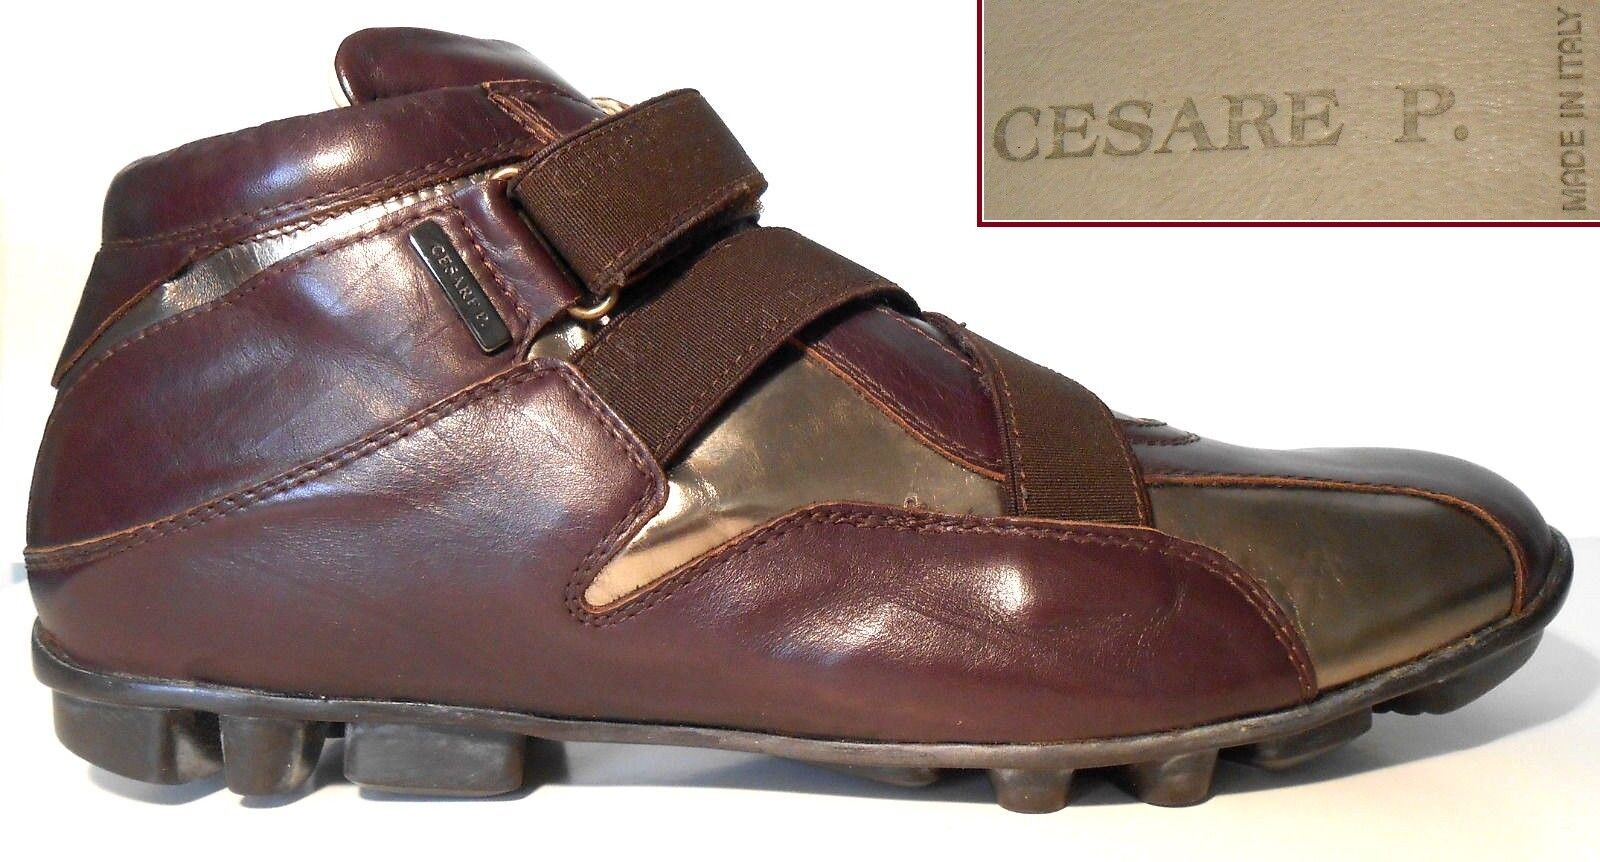 CESARE PACIOTTI NEW $595 FASHION SNEAKERS DRIVERS BURGUNGY/GOLD BURGUNGY/GOLD DRIVERS ITALY EUR43 US10 aa40c2